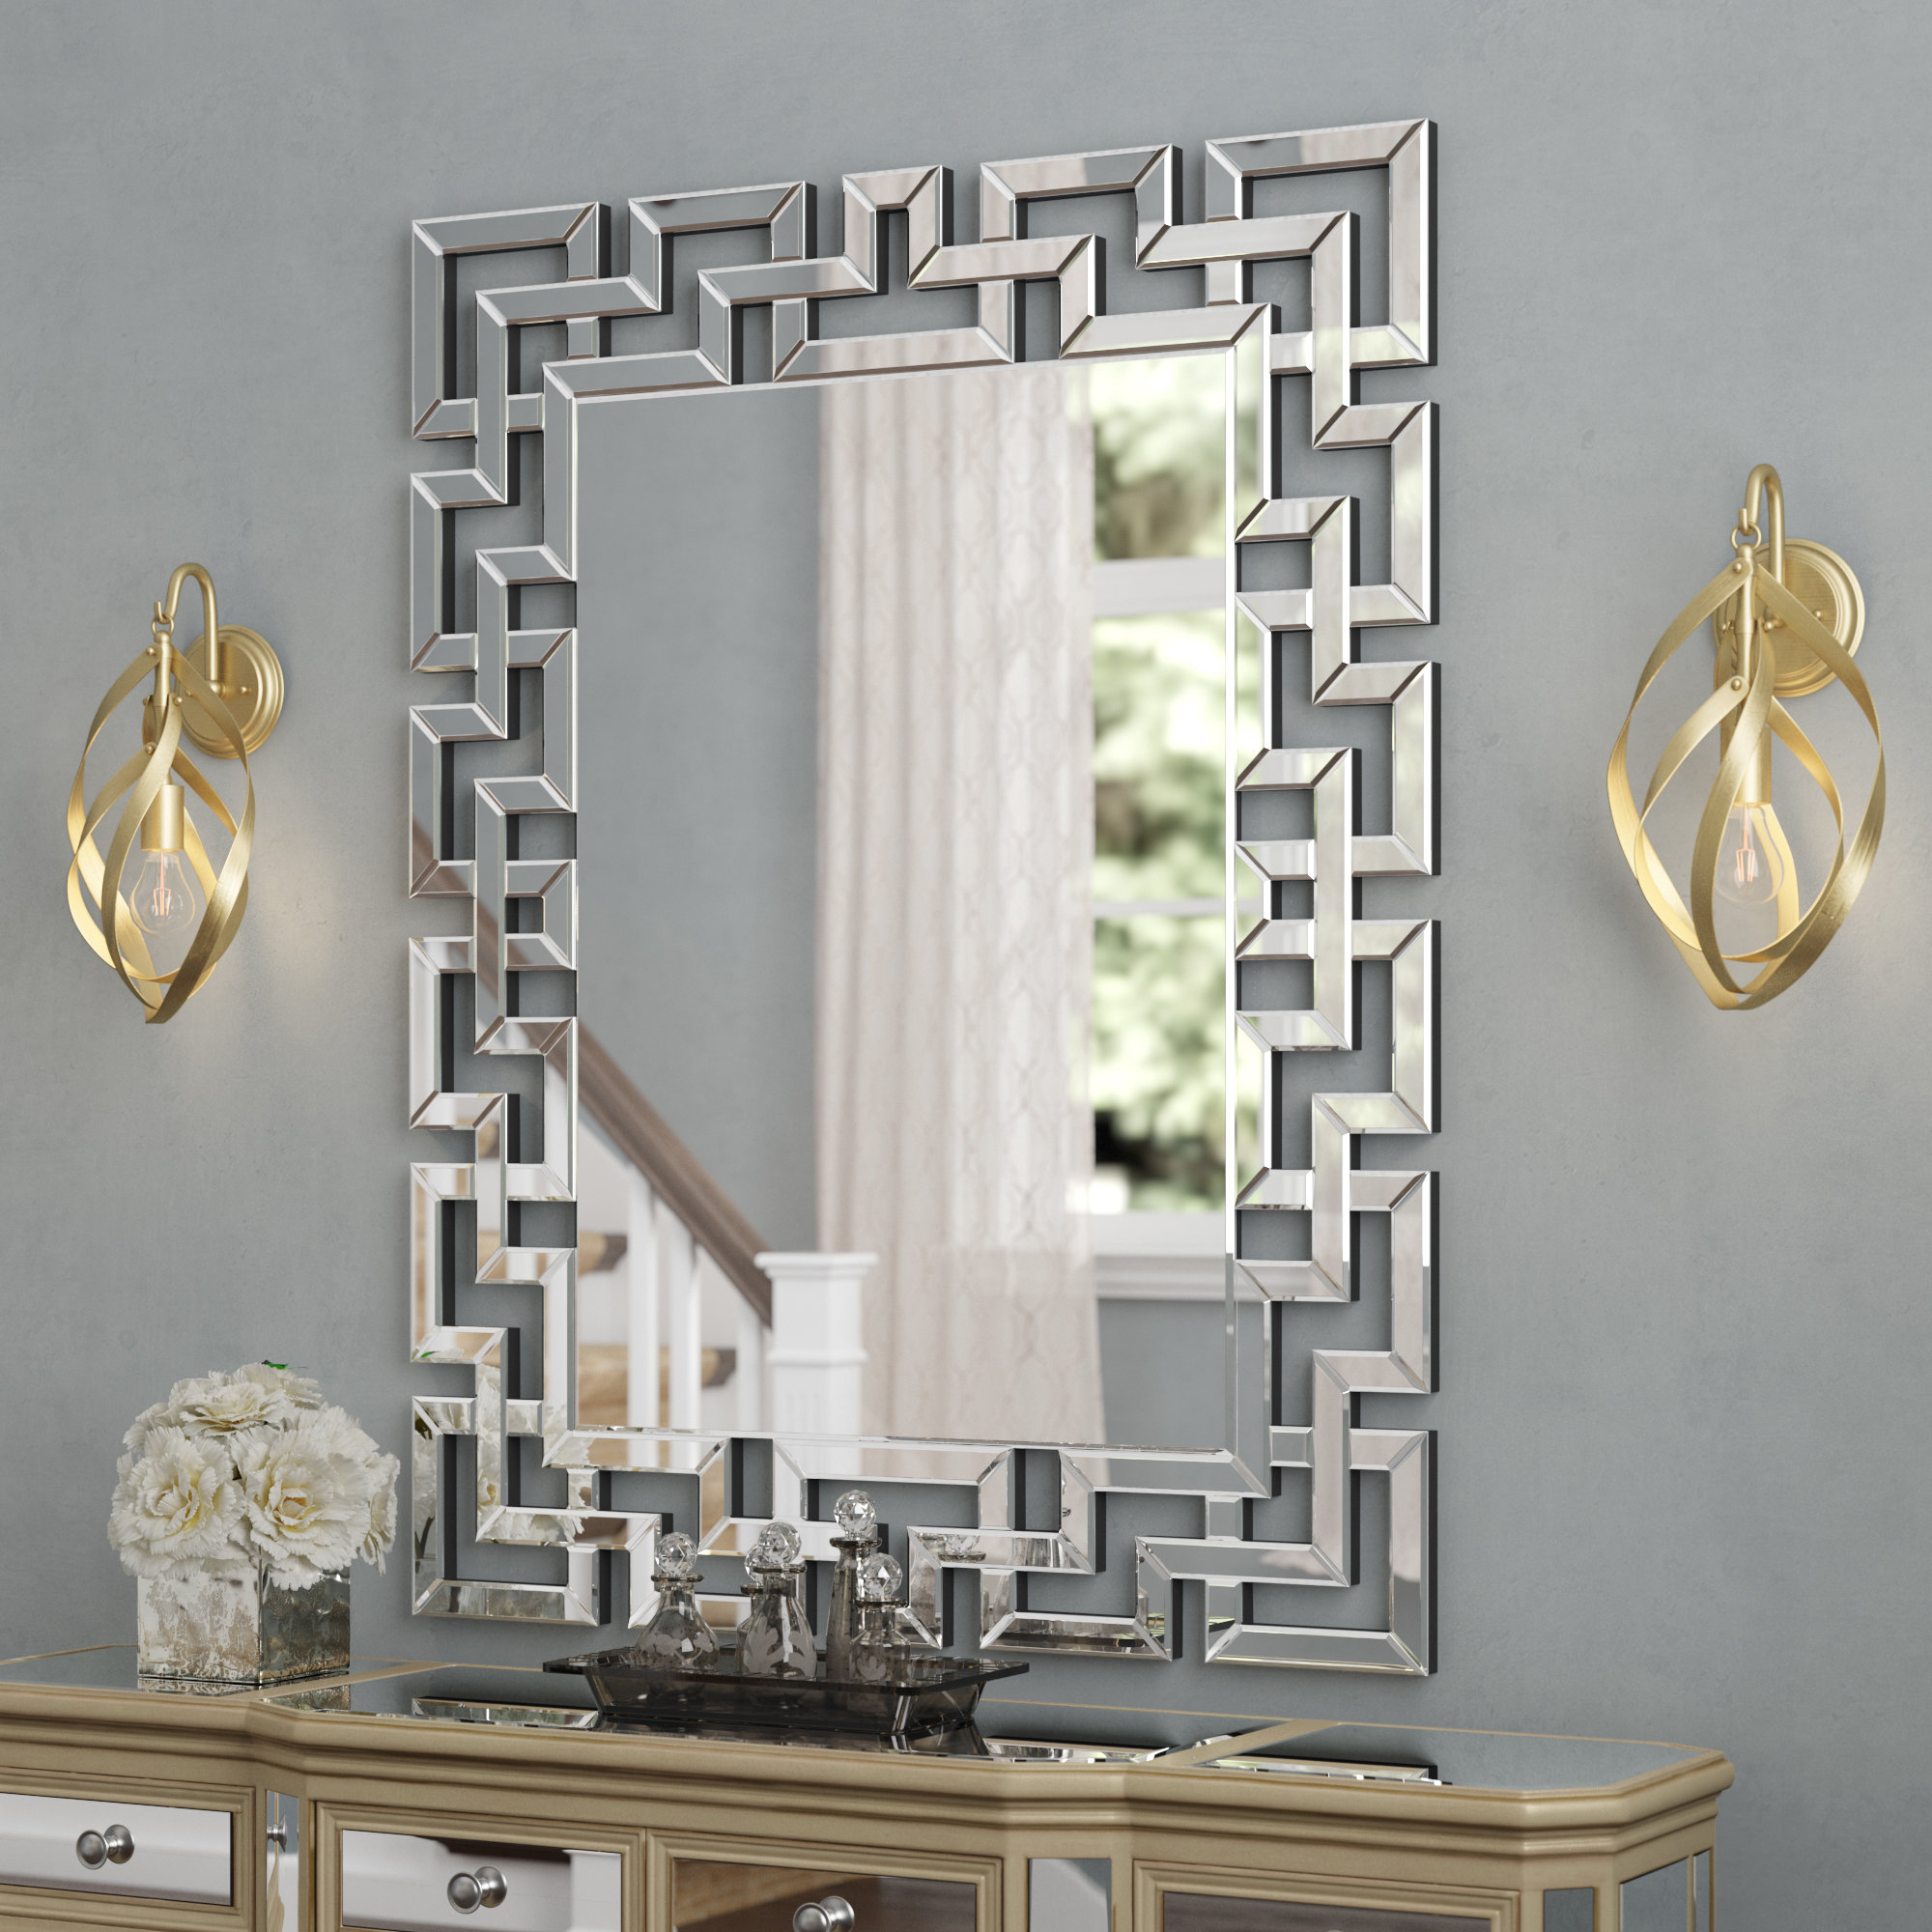 Caja Rectangle Glass Frame Wall Mirror Regarding Newest Wall Mirrors Designs (View 7 of 20)